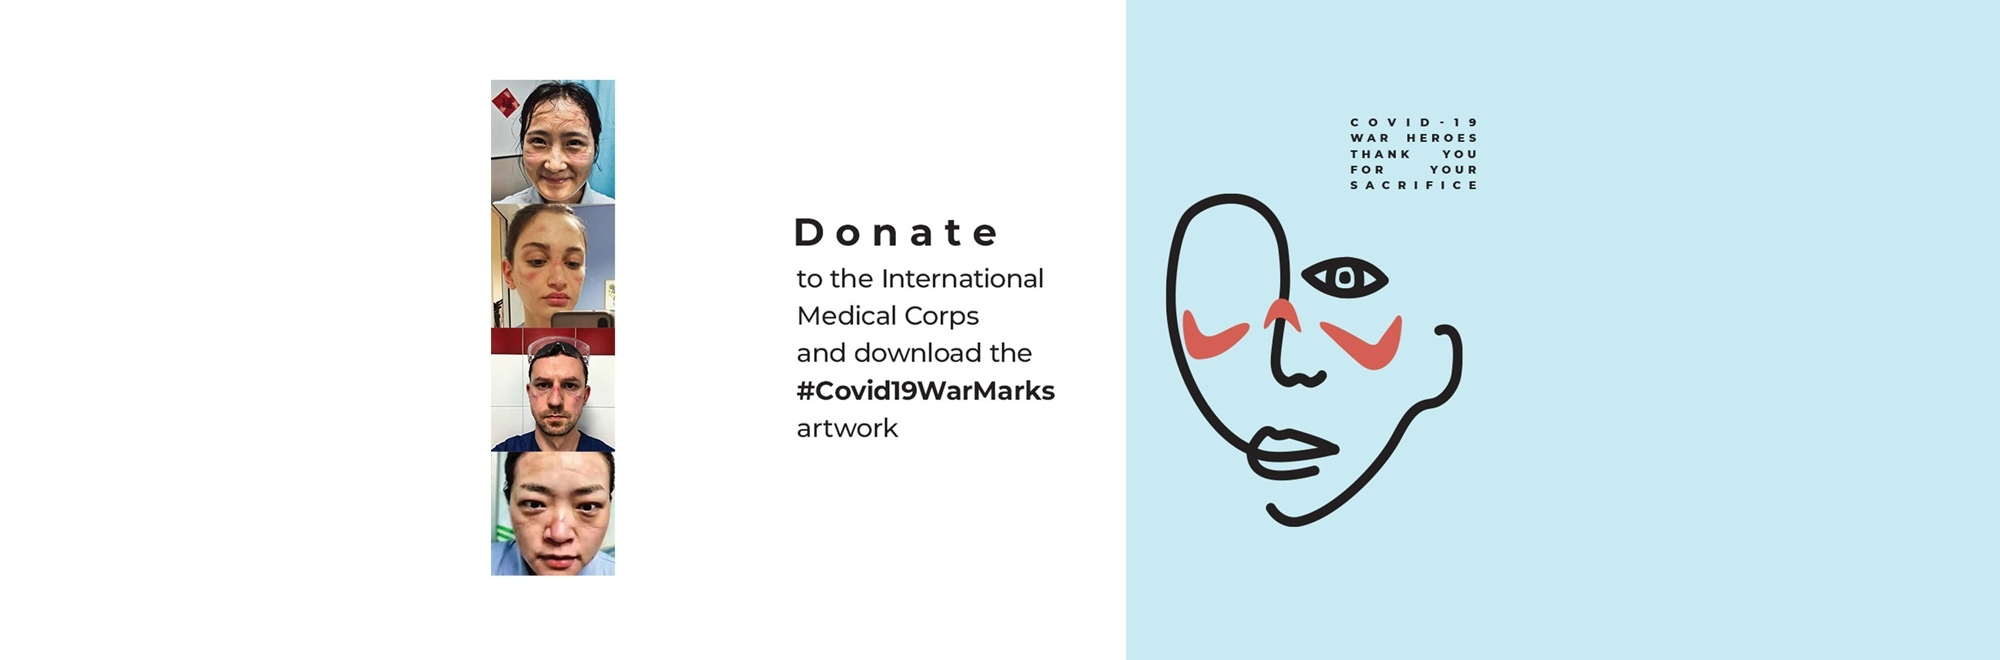 Interweave Agency and the International Medical Corps creates #COVID19WarMarks donation campaign that gives donors tribute artwork